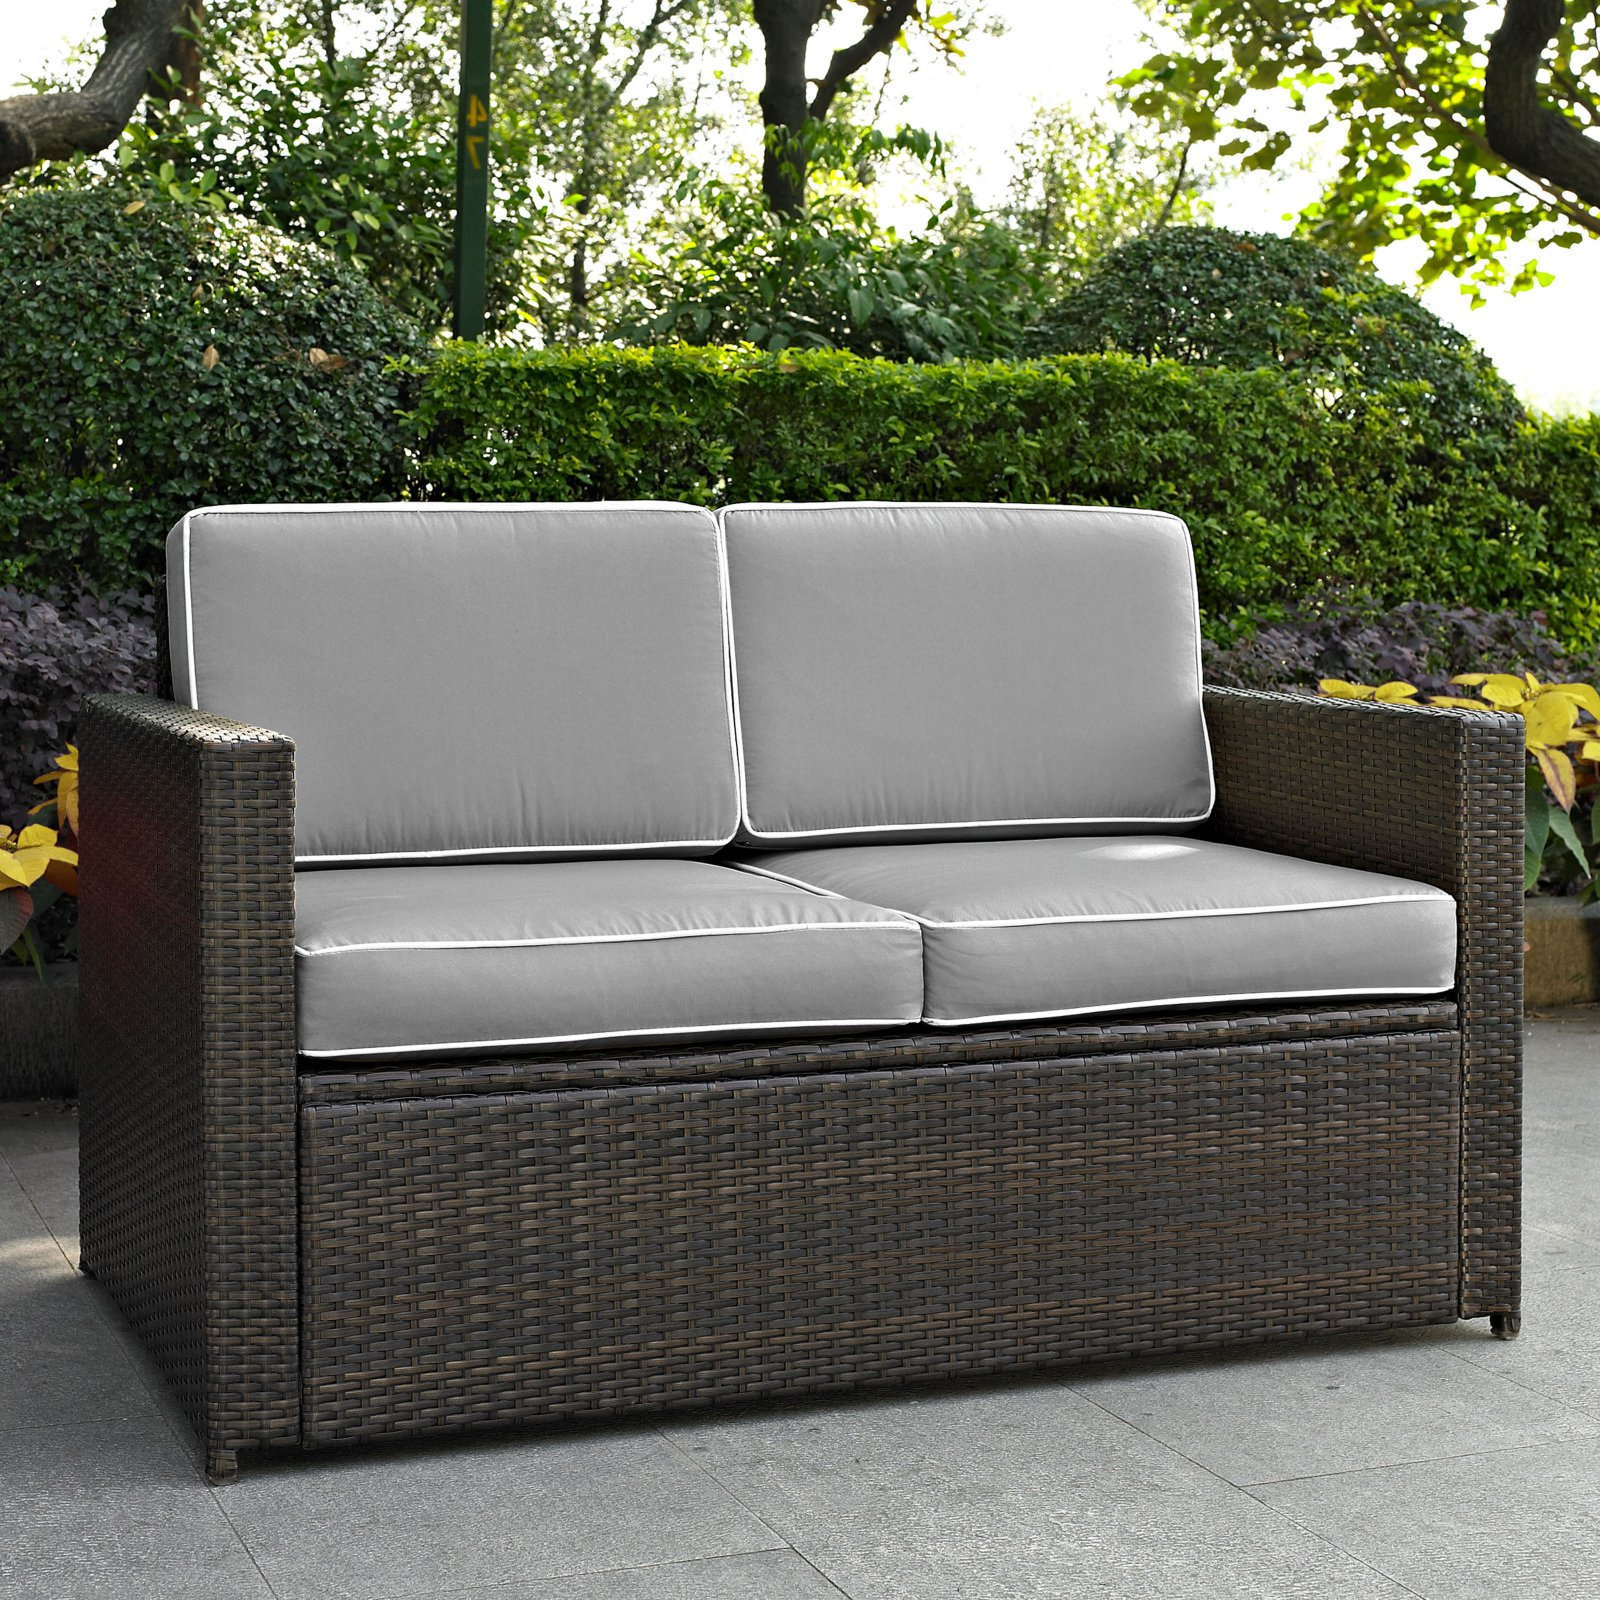 Mullenax Outdoor Loveseats With Cushions In Trendy Outdoor Crosley Furniture Palm Harbor All Weather Wicker (View 8 of 20)